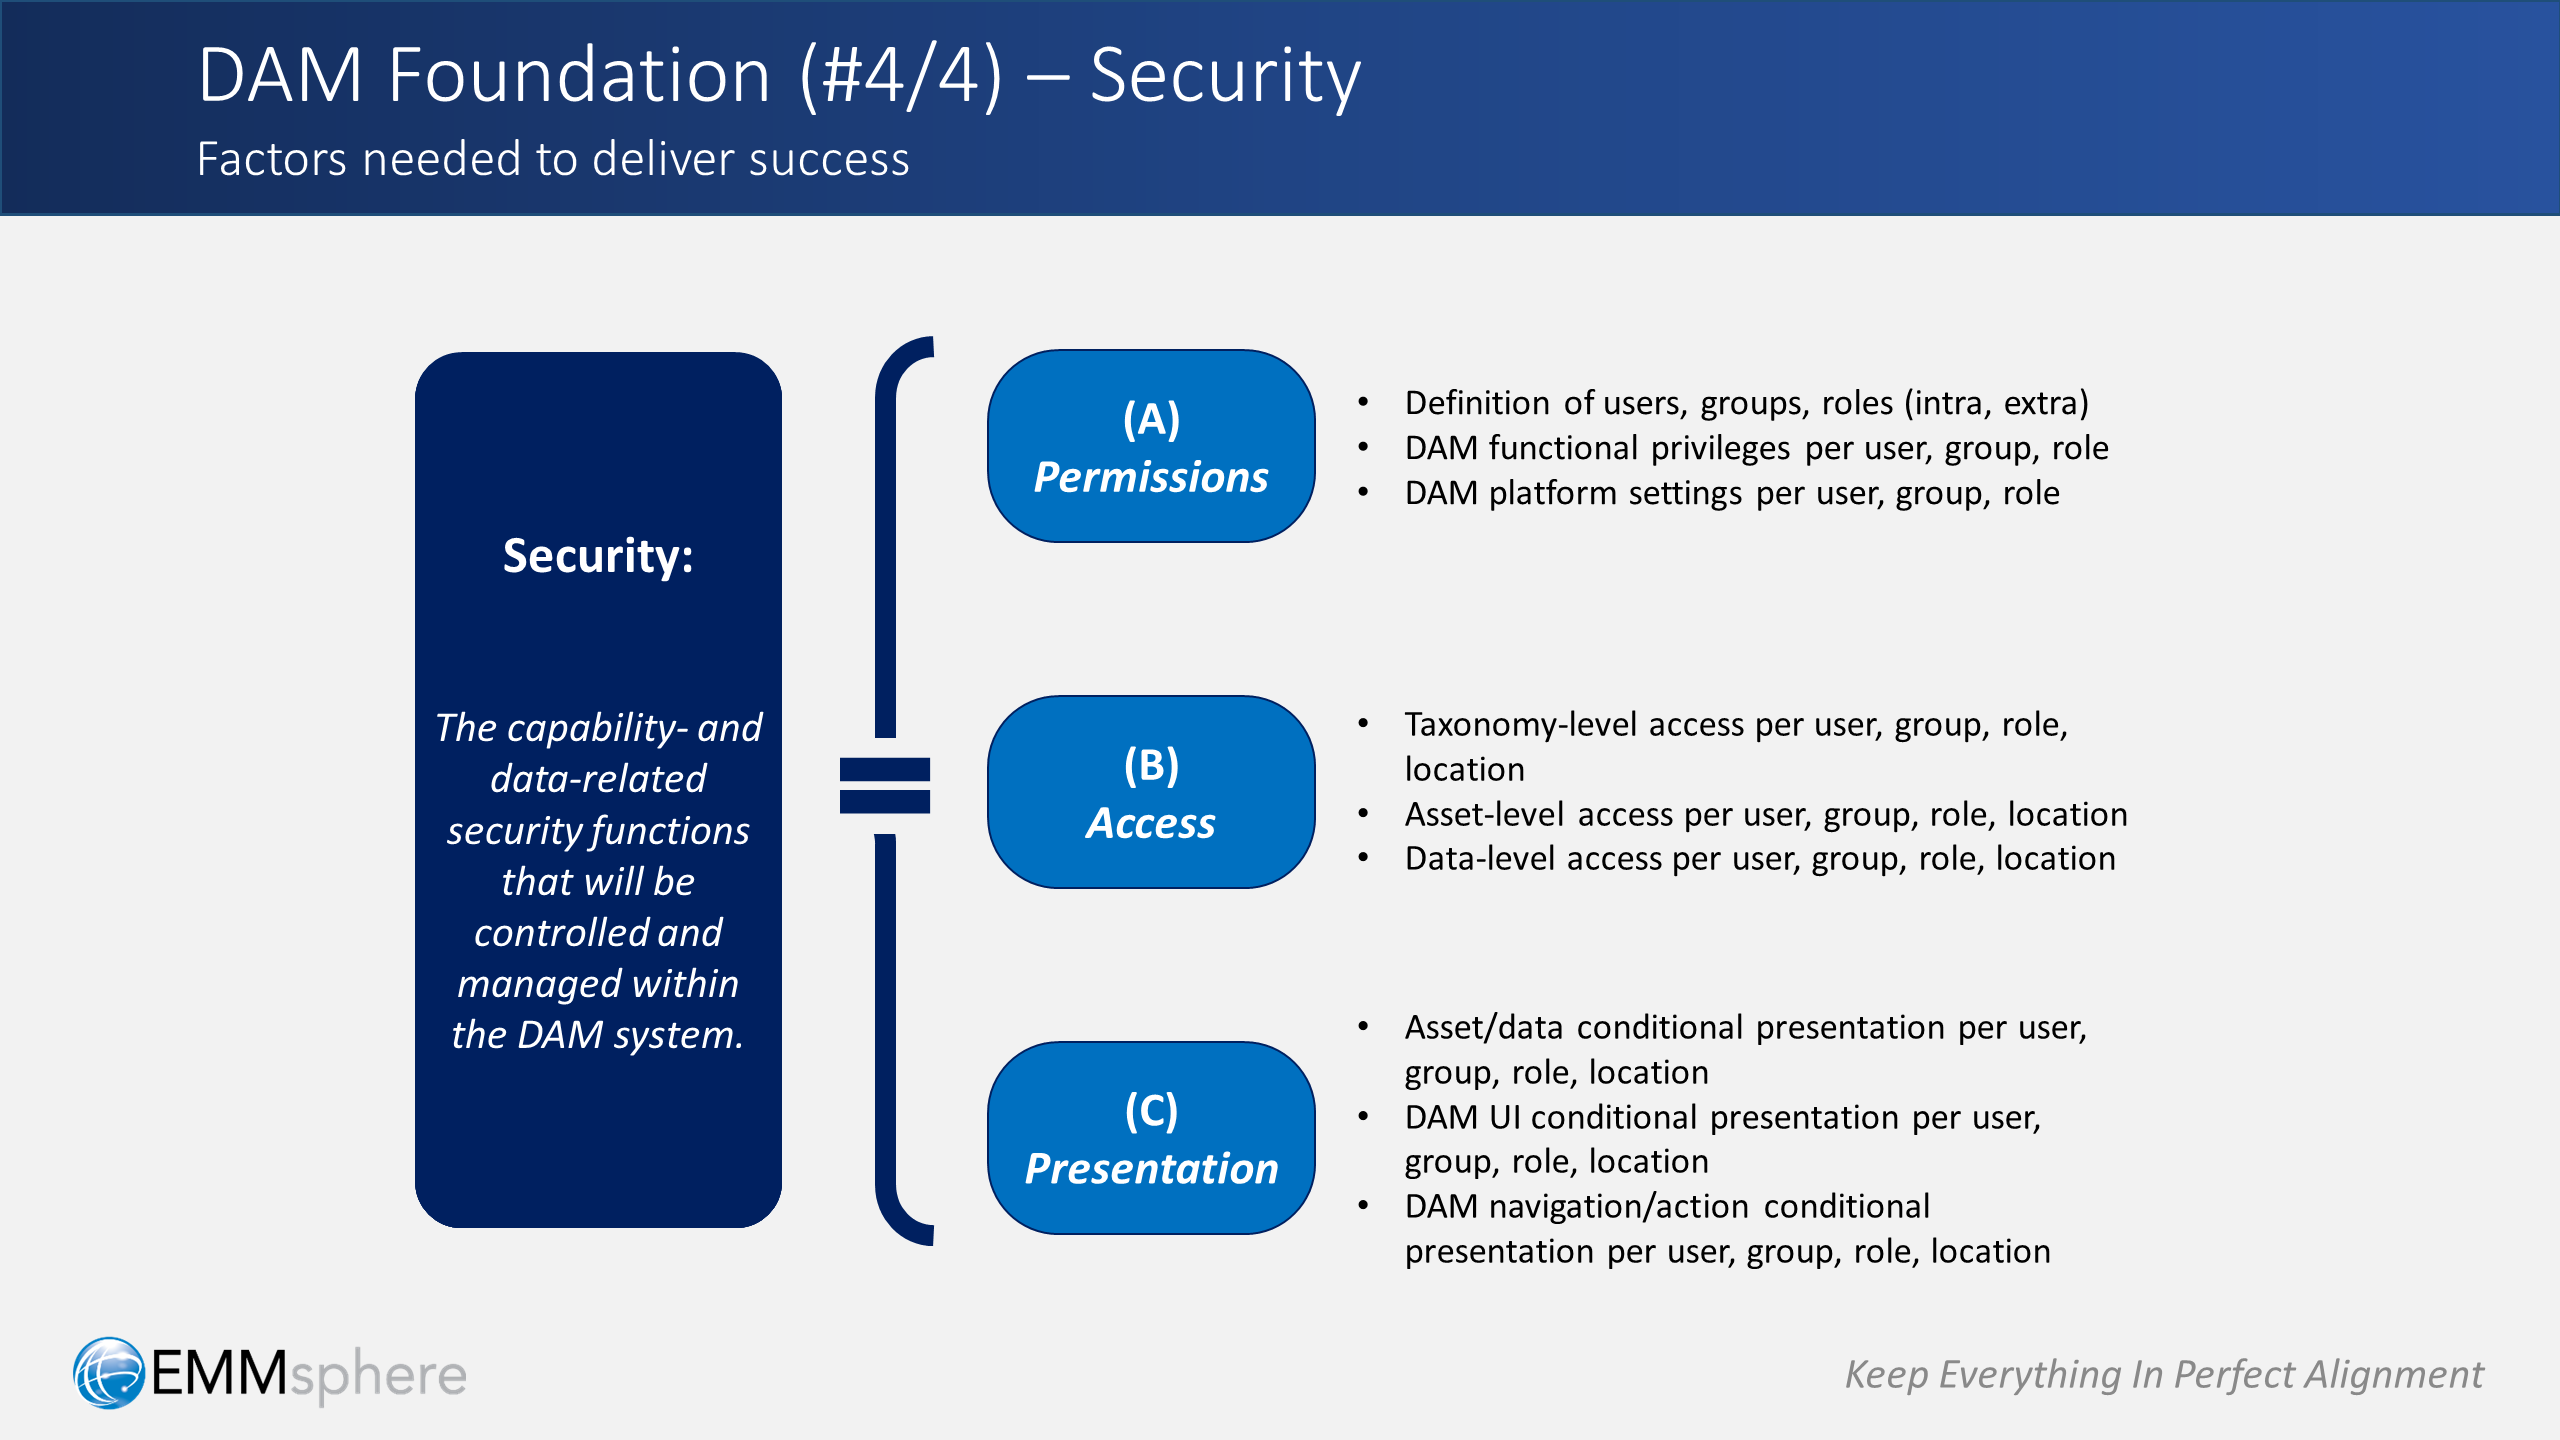 DAM Perspectives Part 4 - Security